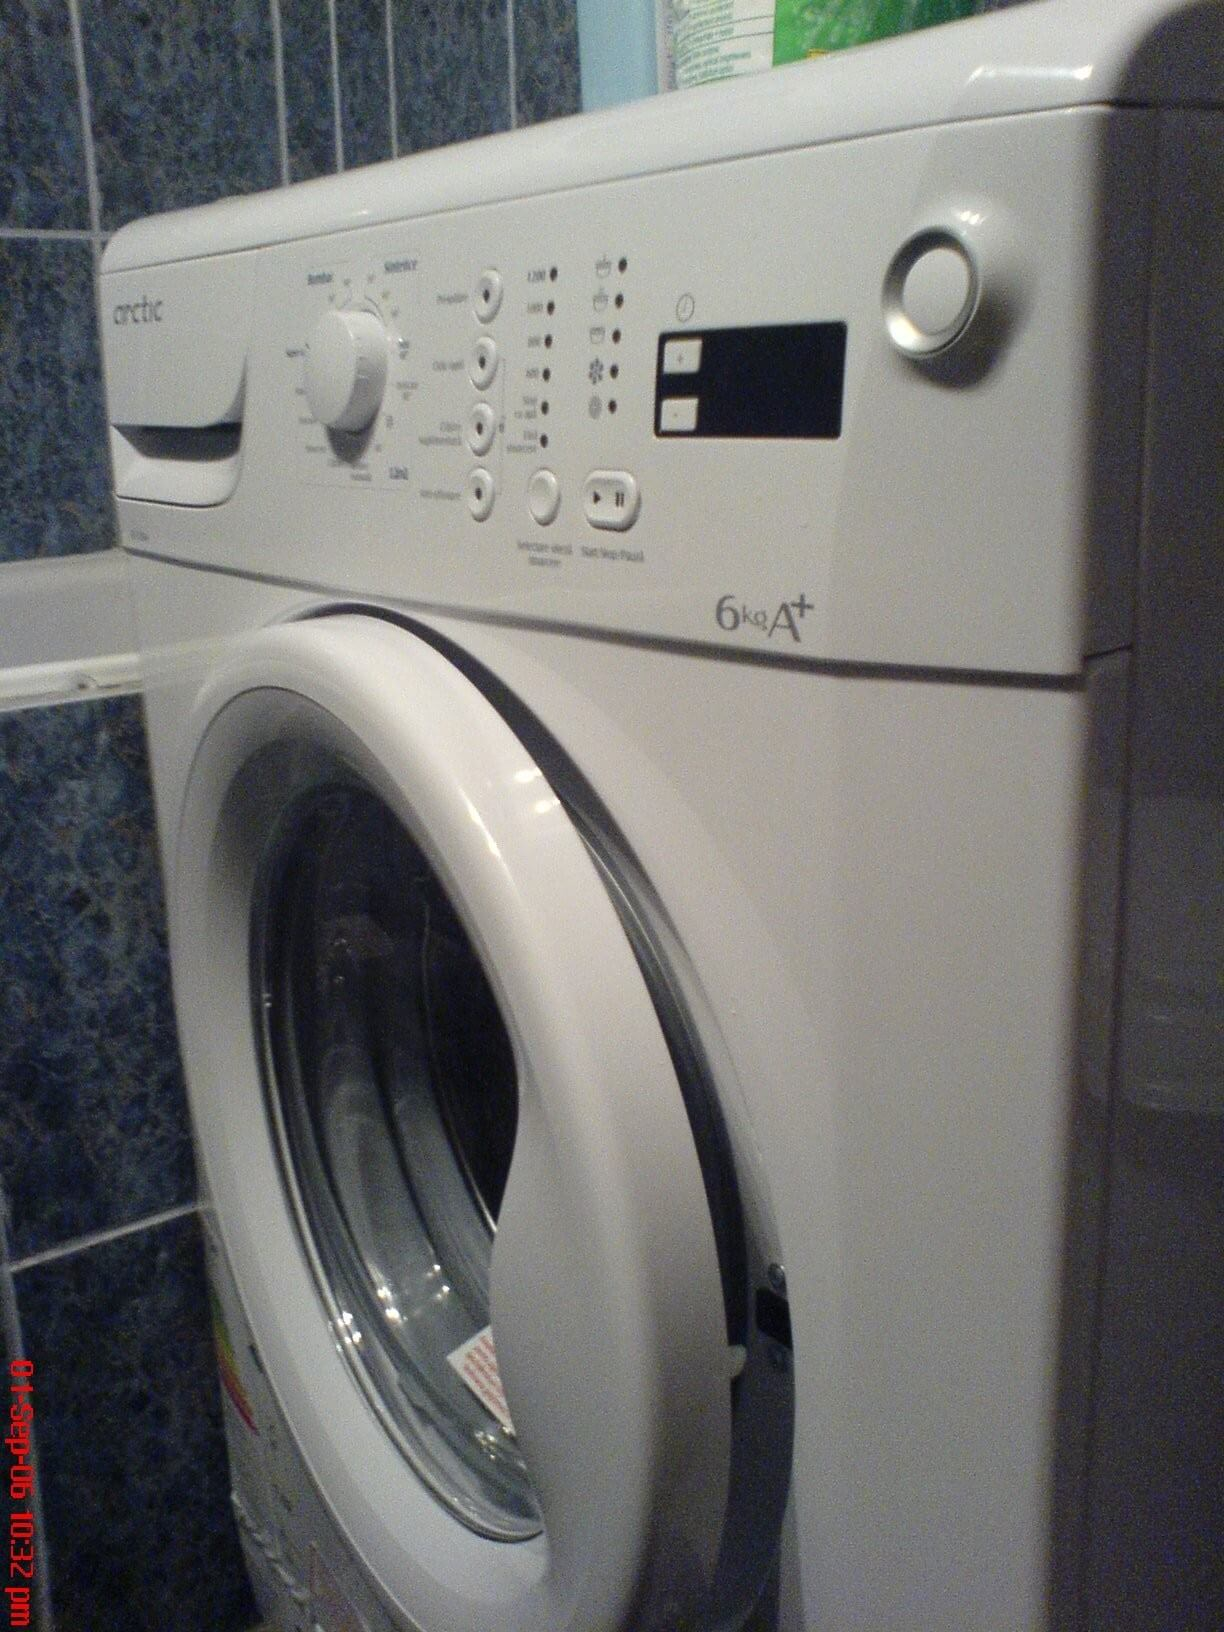 Washing Machine Repair In Noida : Save Sundays